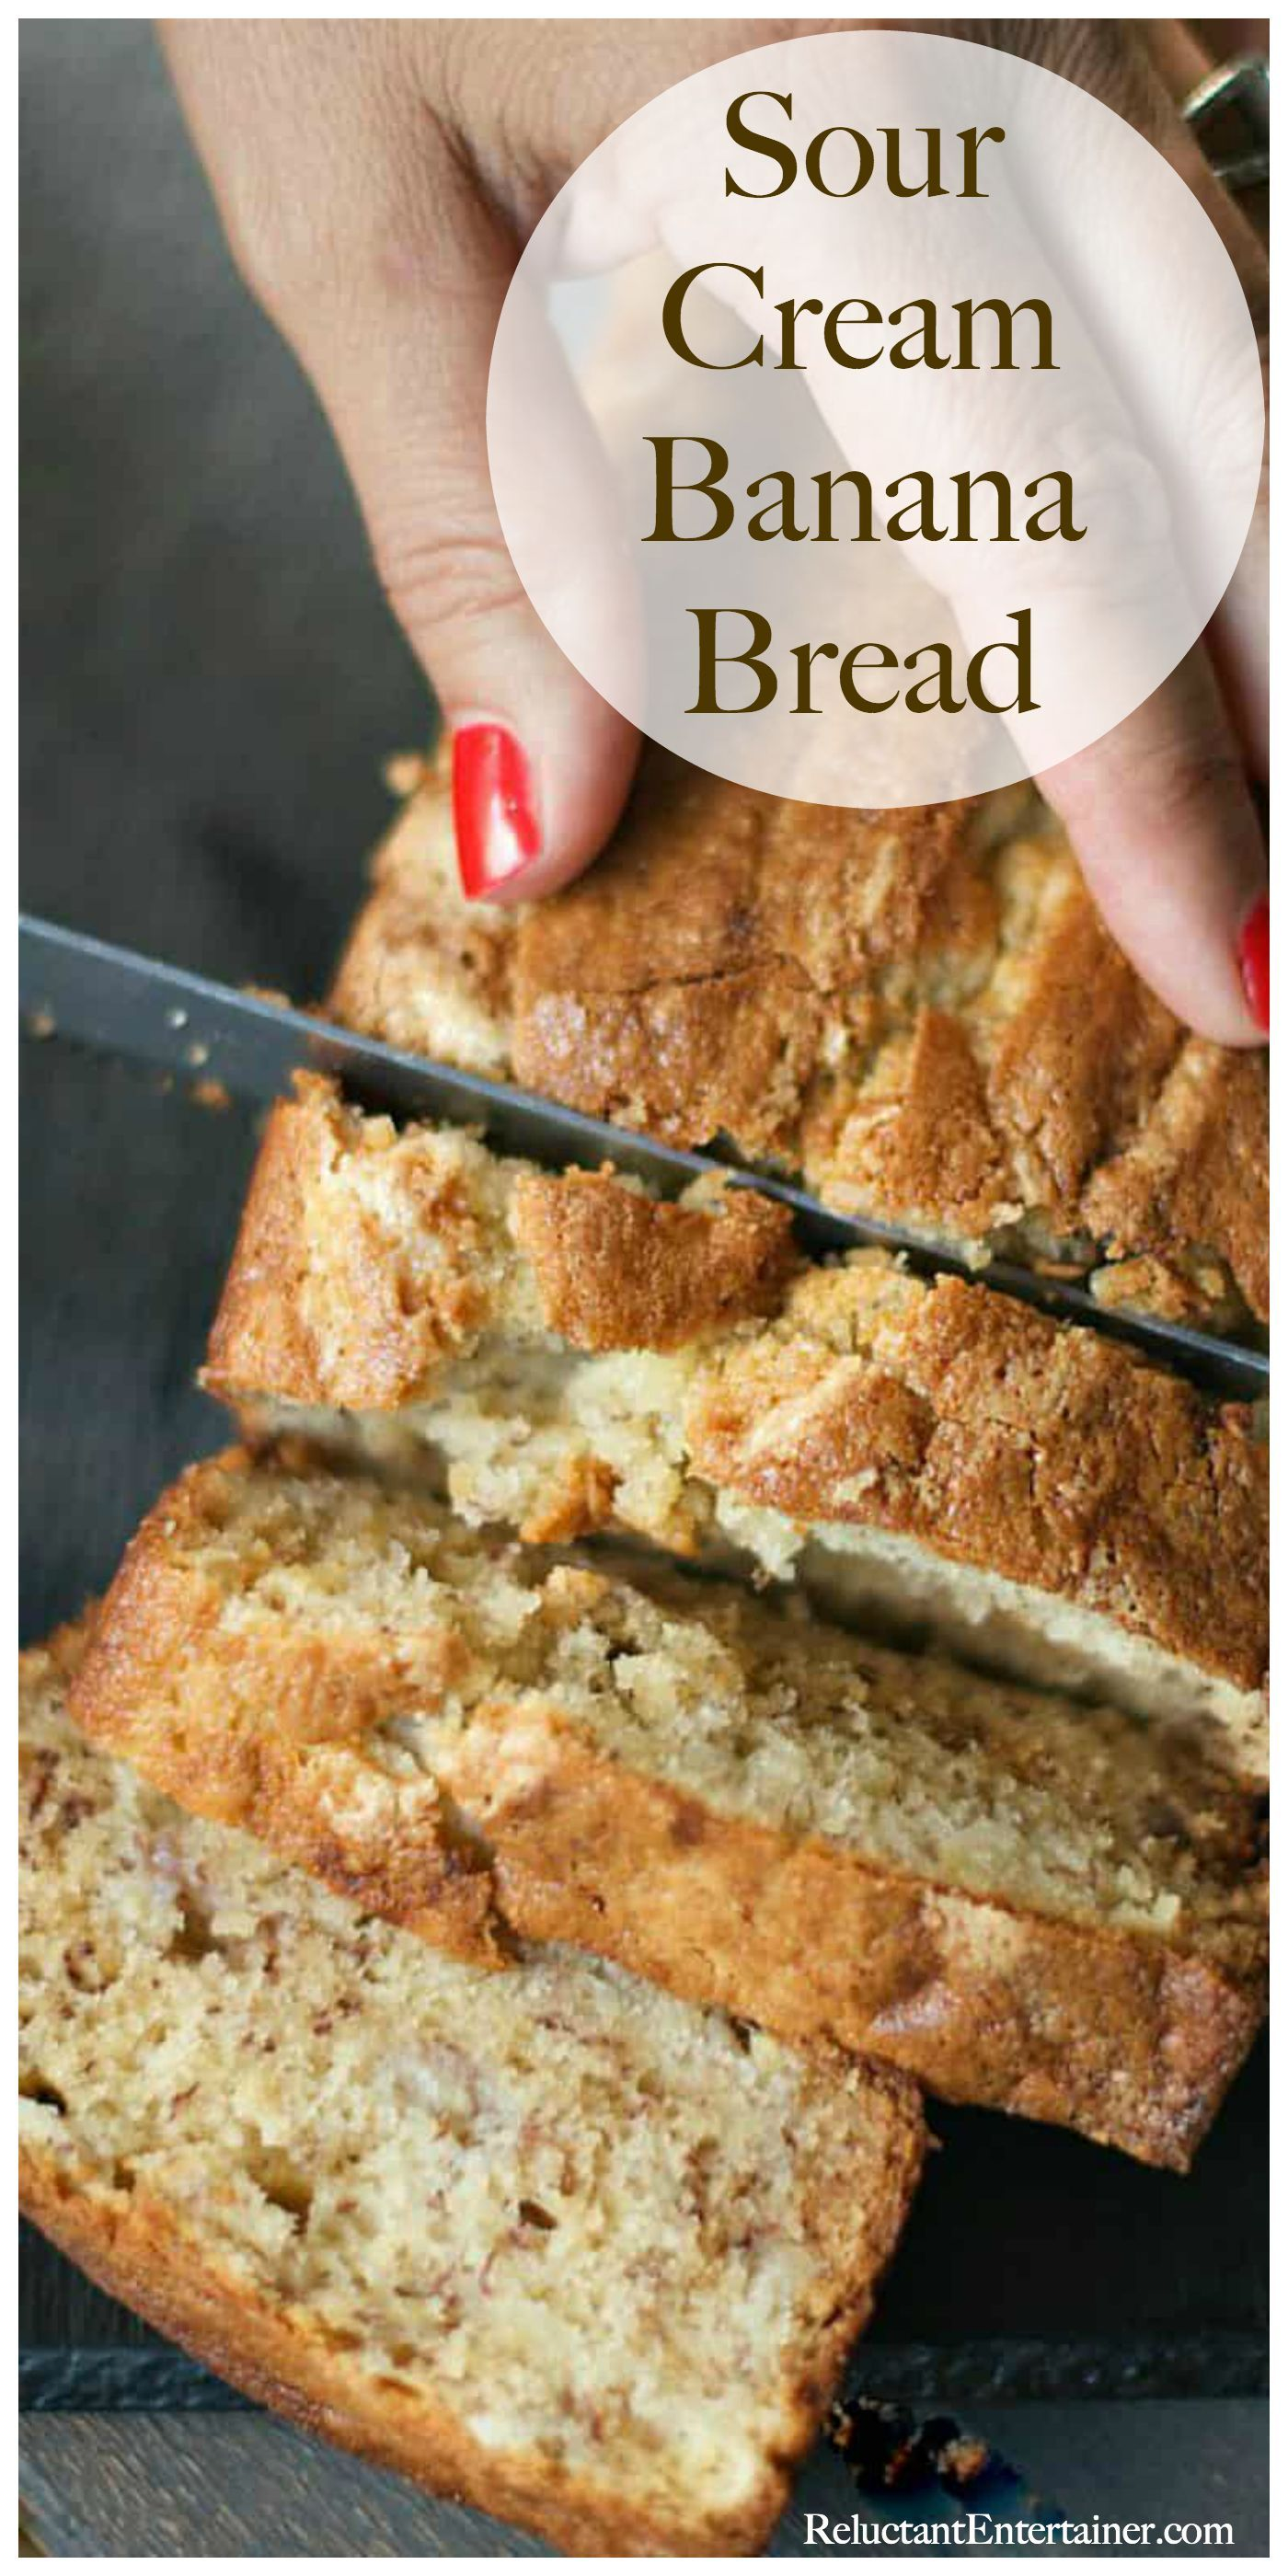 Sour Cream Banana Bread Bananabreadrecipe Banana Bread Recipe Moist Sour Cream Banana Bread Banana Bread Recipe Easy Moist